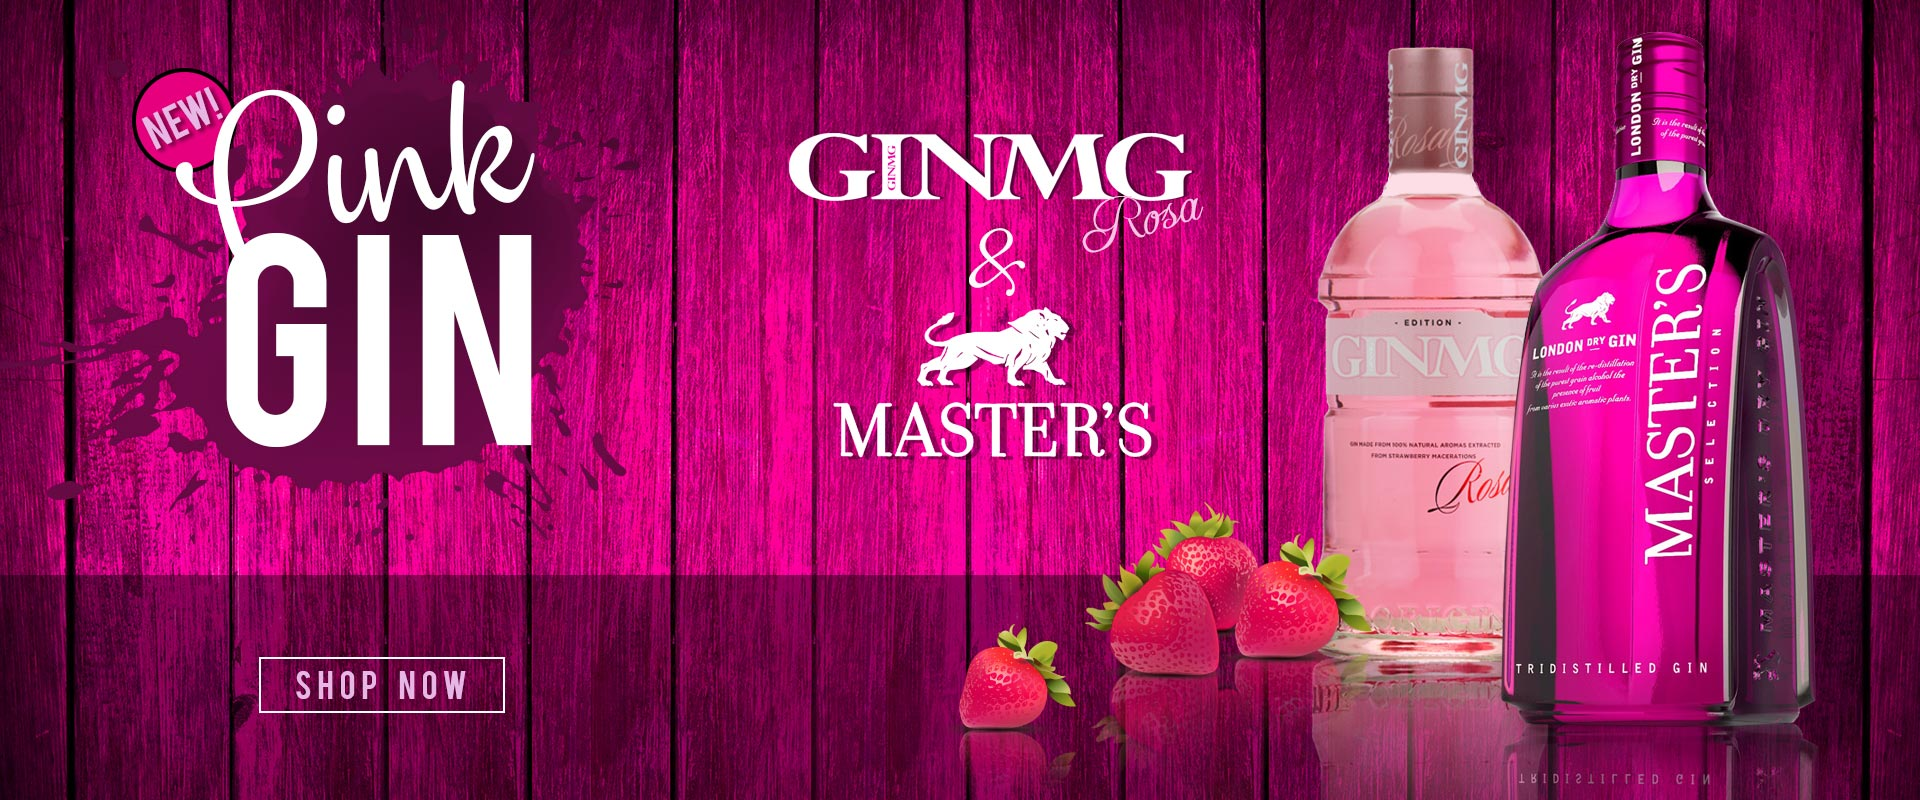 Master's and MG Pink Gin